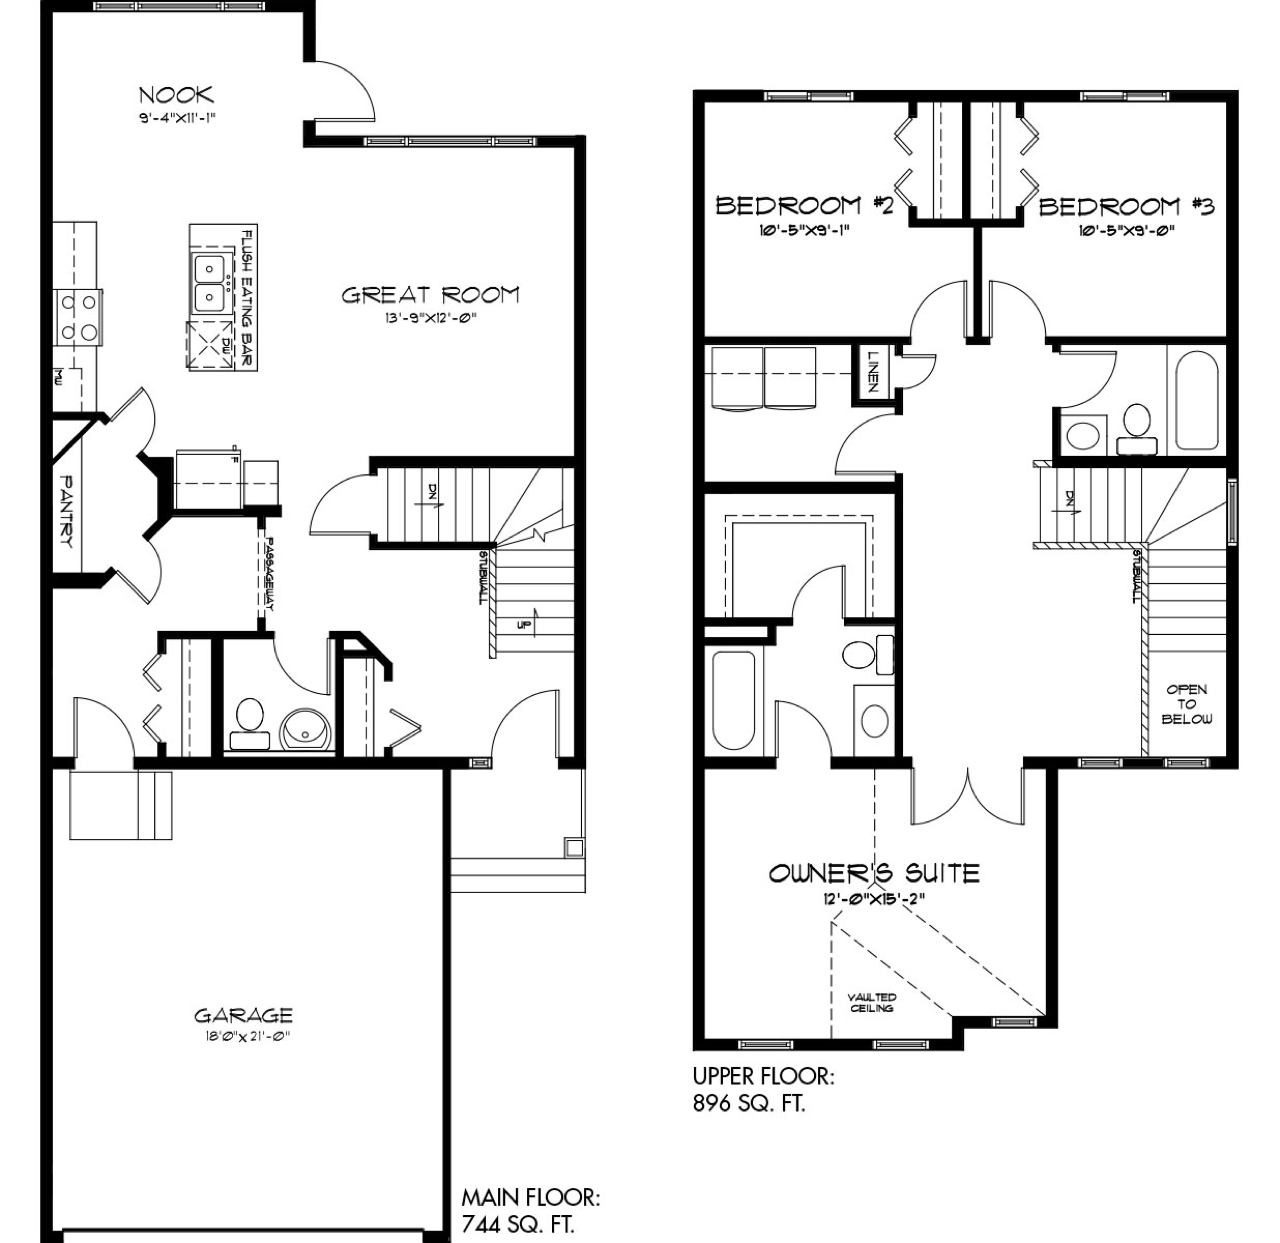 The Latest Quick Possession Homes From Pacesetter! Lusitano Floor Plan Image